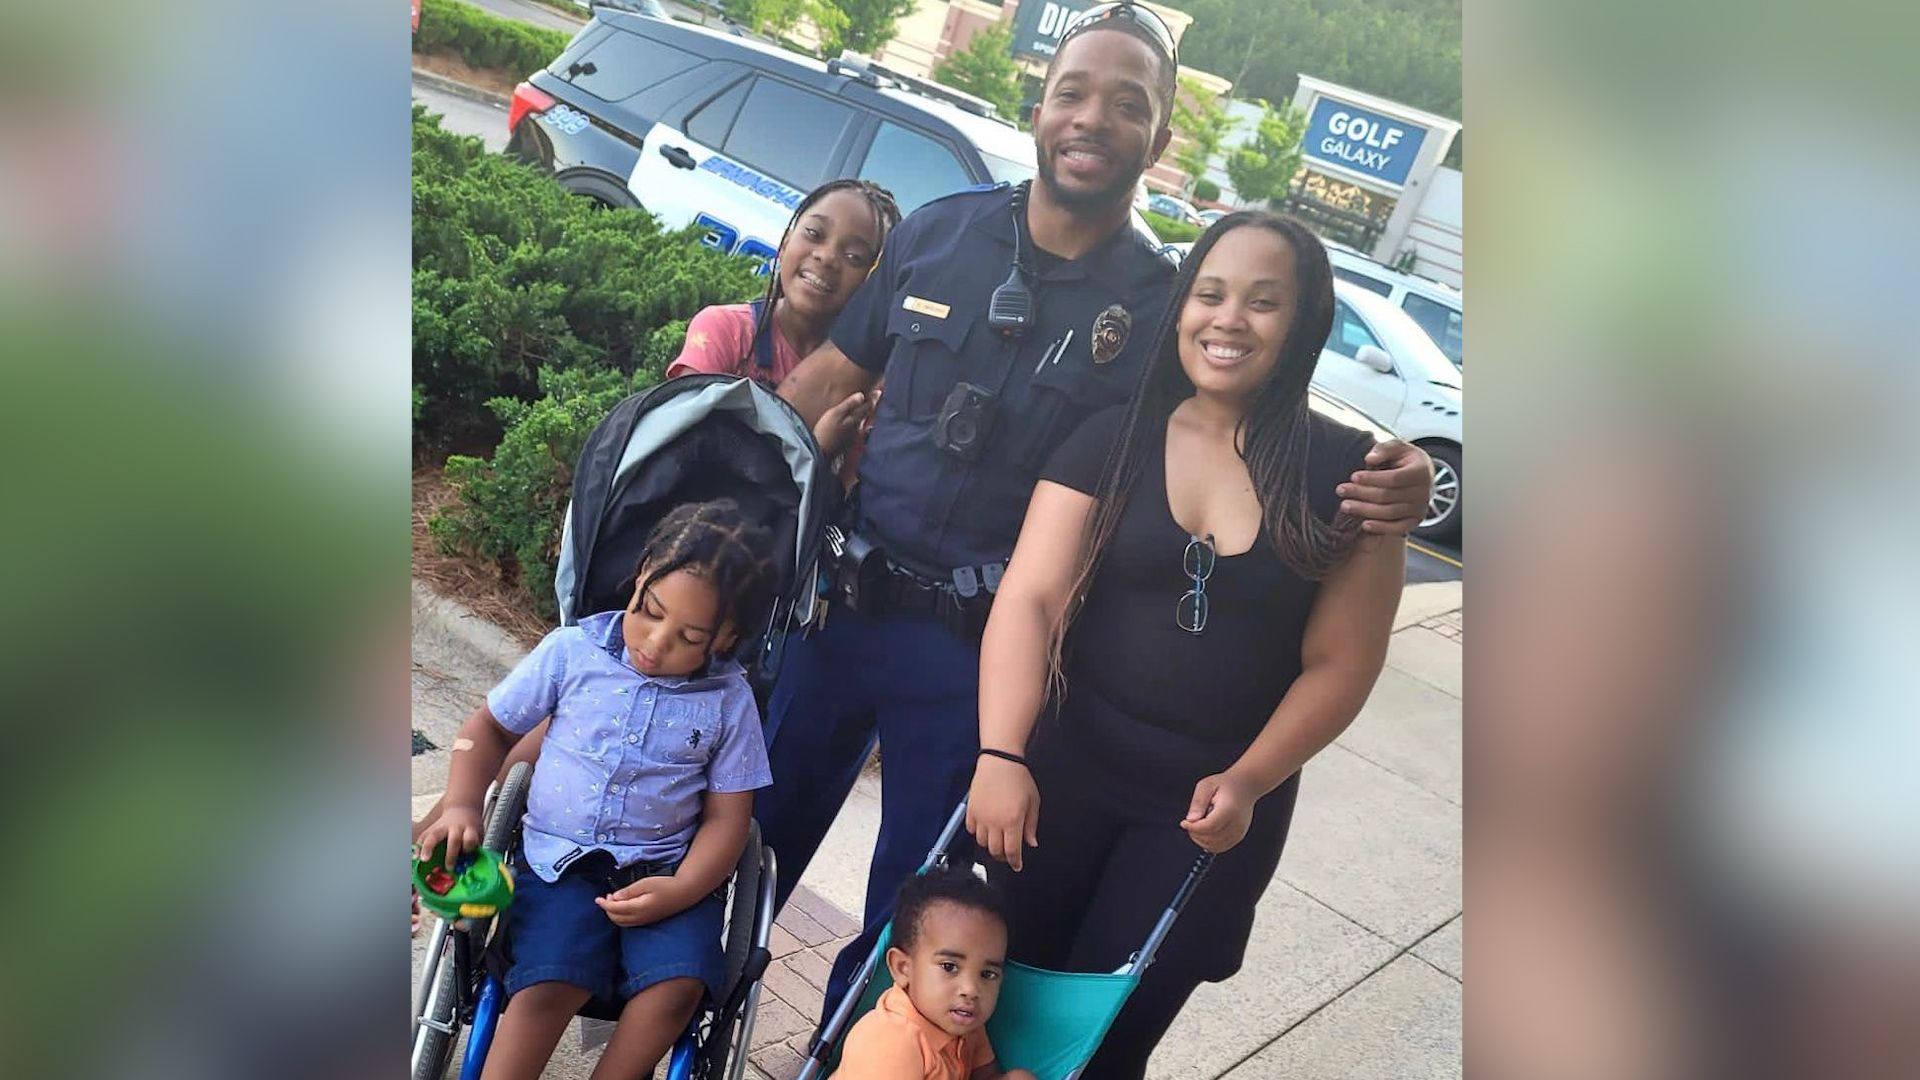 Birmingham police officer, wife raising awareness for son with Spinal Muscular Atrophy